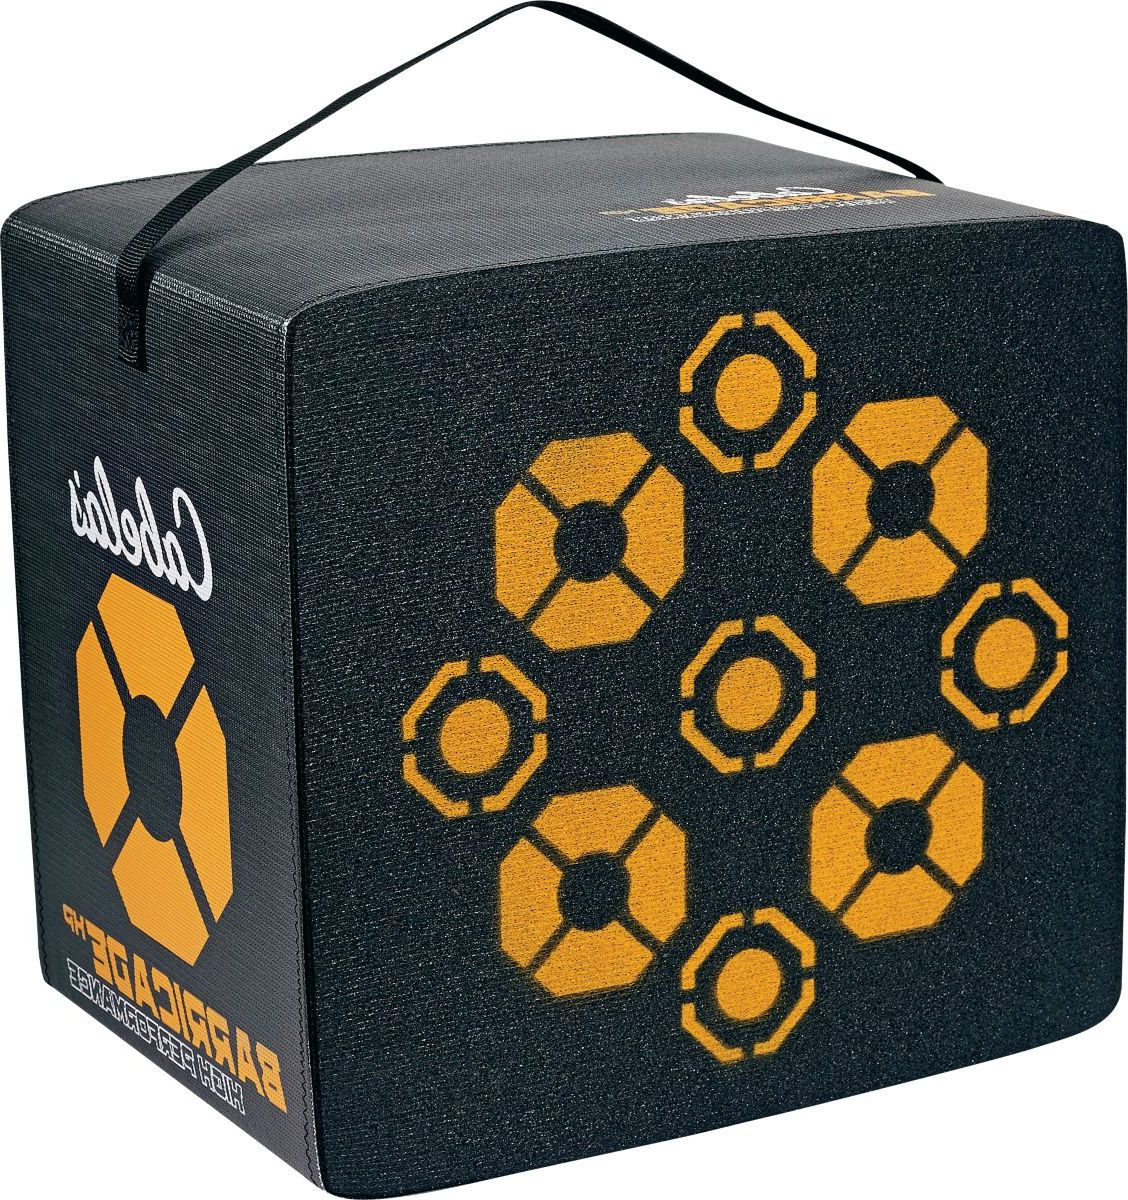 Cabela's Barricade High-Performance Target